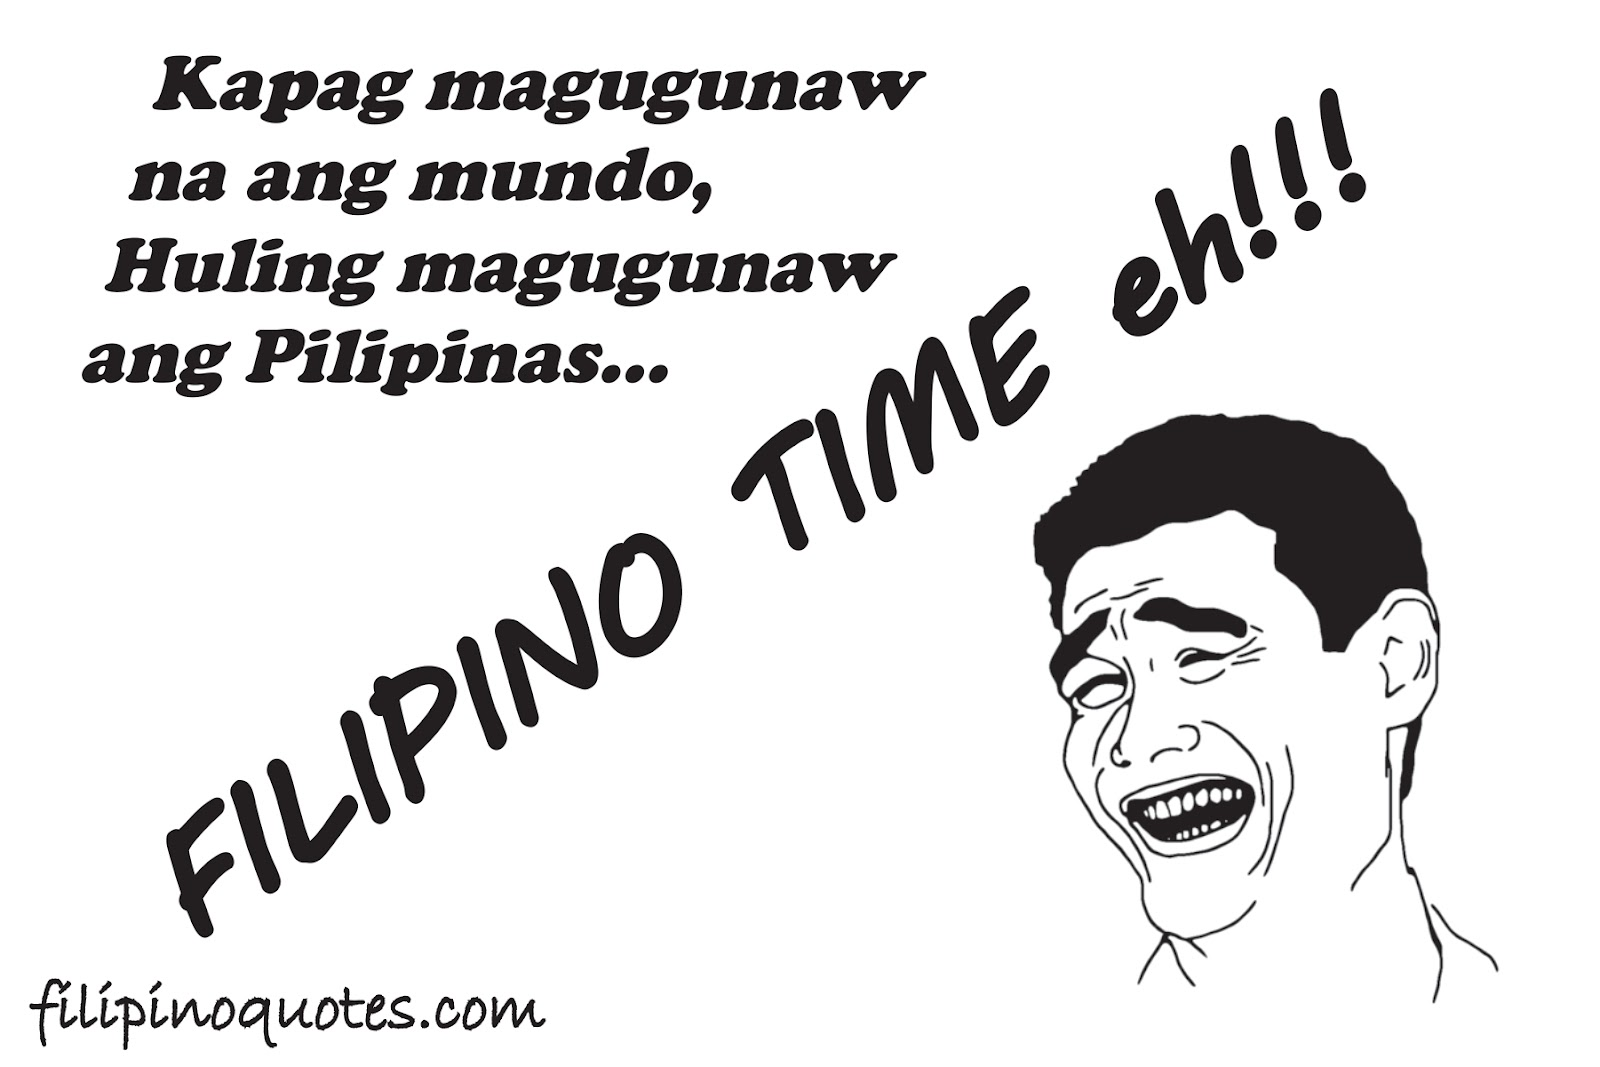 Funny Jokes Quotes Funny Tagalog Joke Saying  Inspiring Quotes And Words In Life